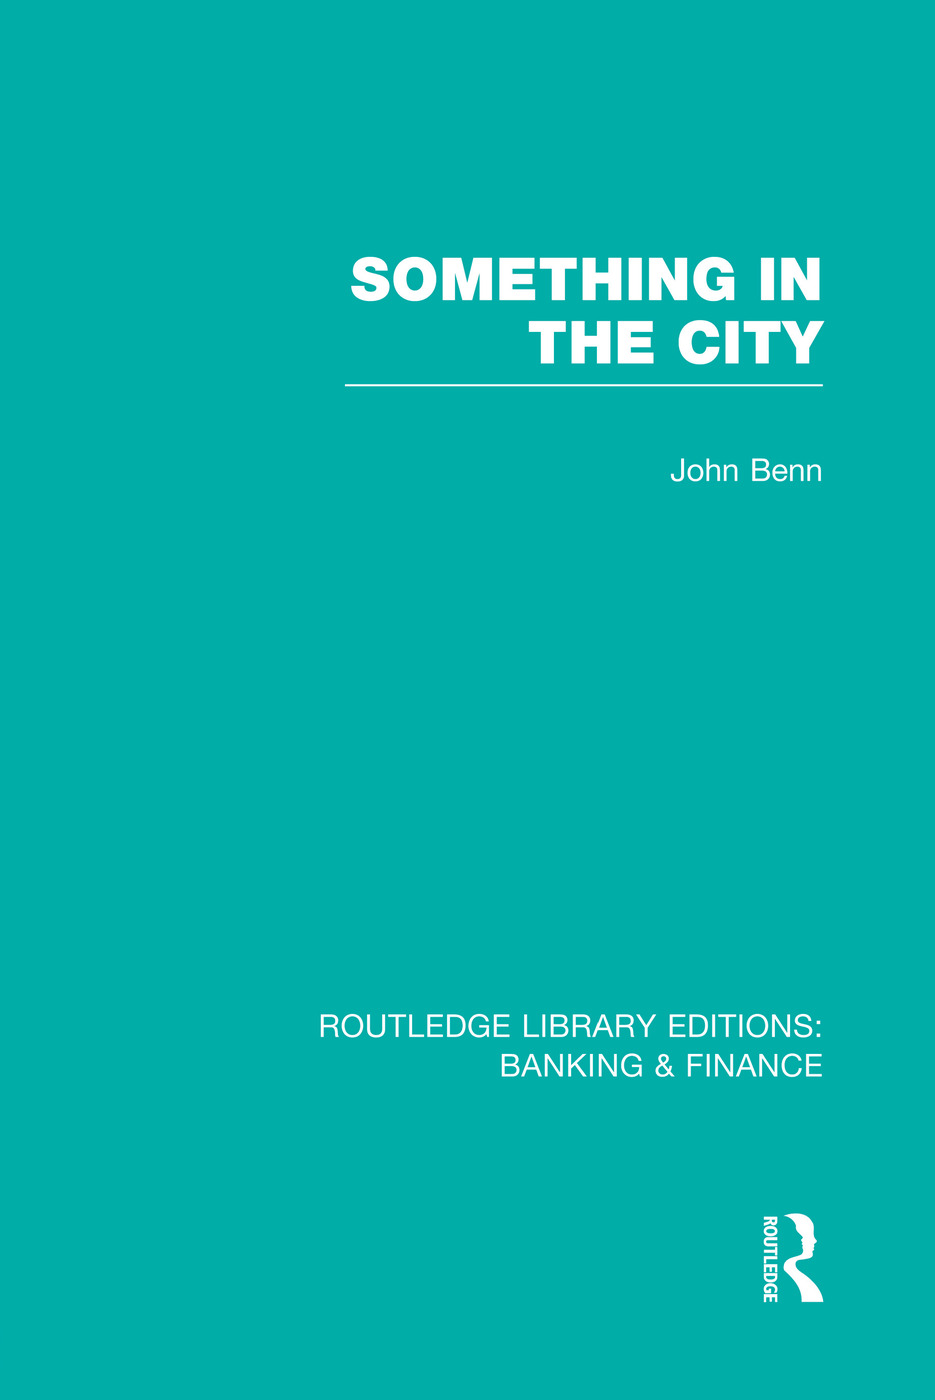 Something in the City (RLE Banking & Finance) book cover